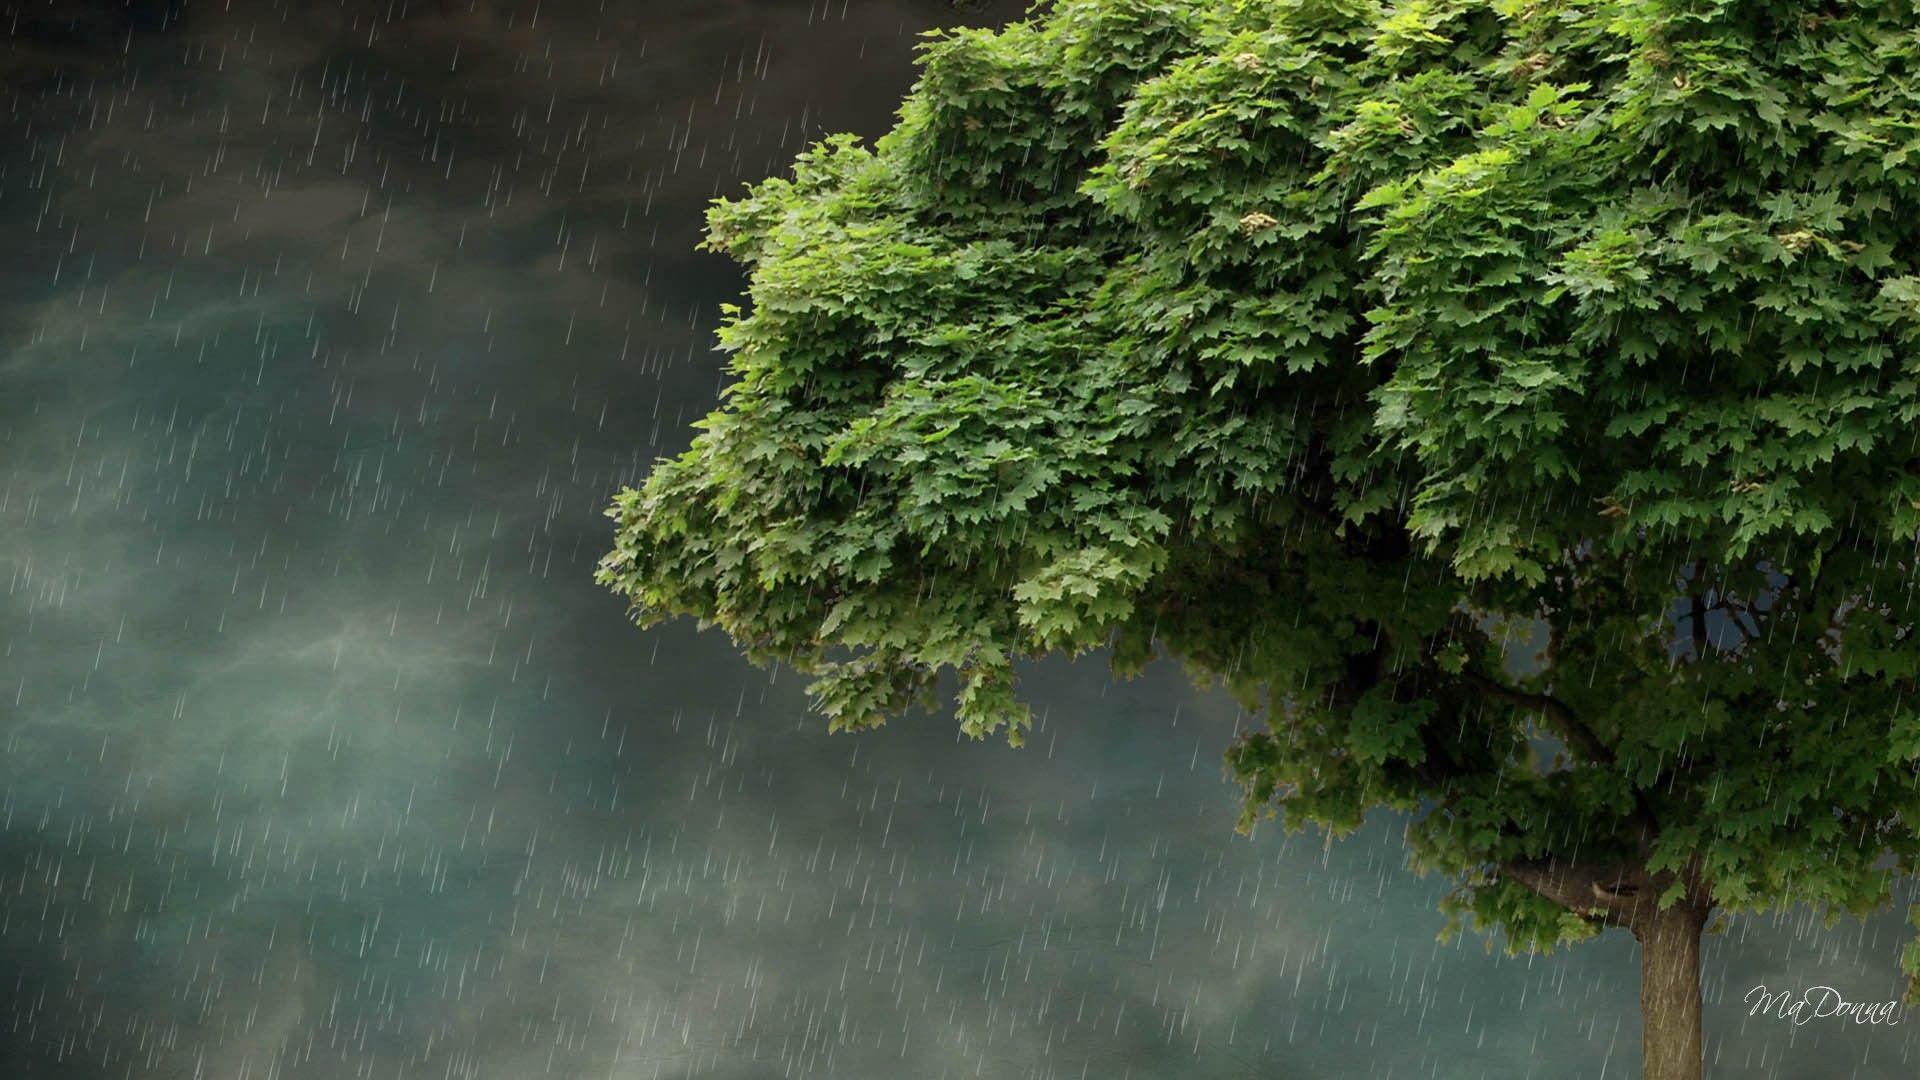 Love Rain Wallpaper Hd : HQ Japan Nature Rain Fall Wallpapers HD Wallpapers HD Wallpapers Pinterest Wallpaper, Hd ...